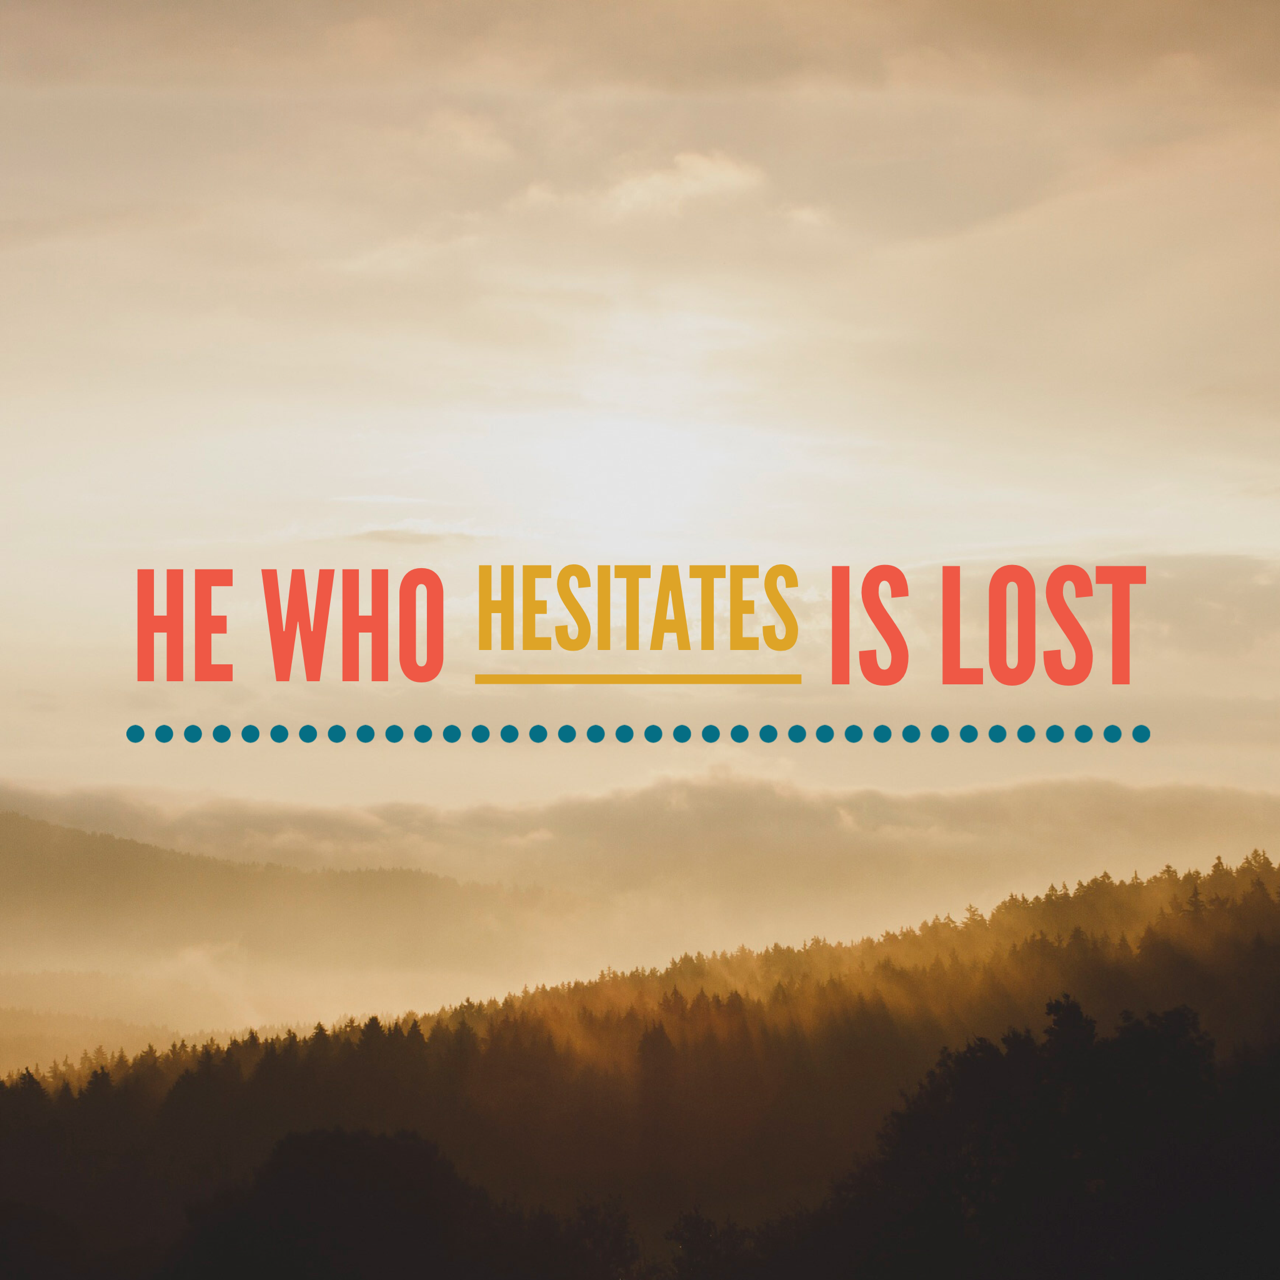 He who hesitates is lost